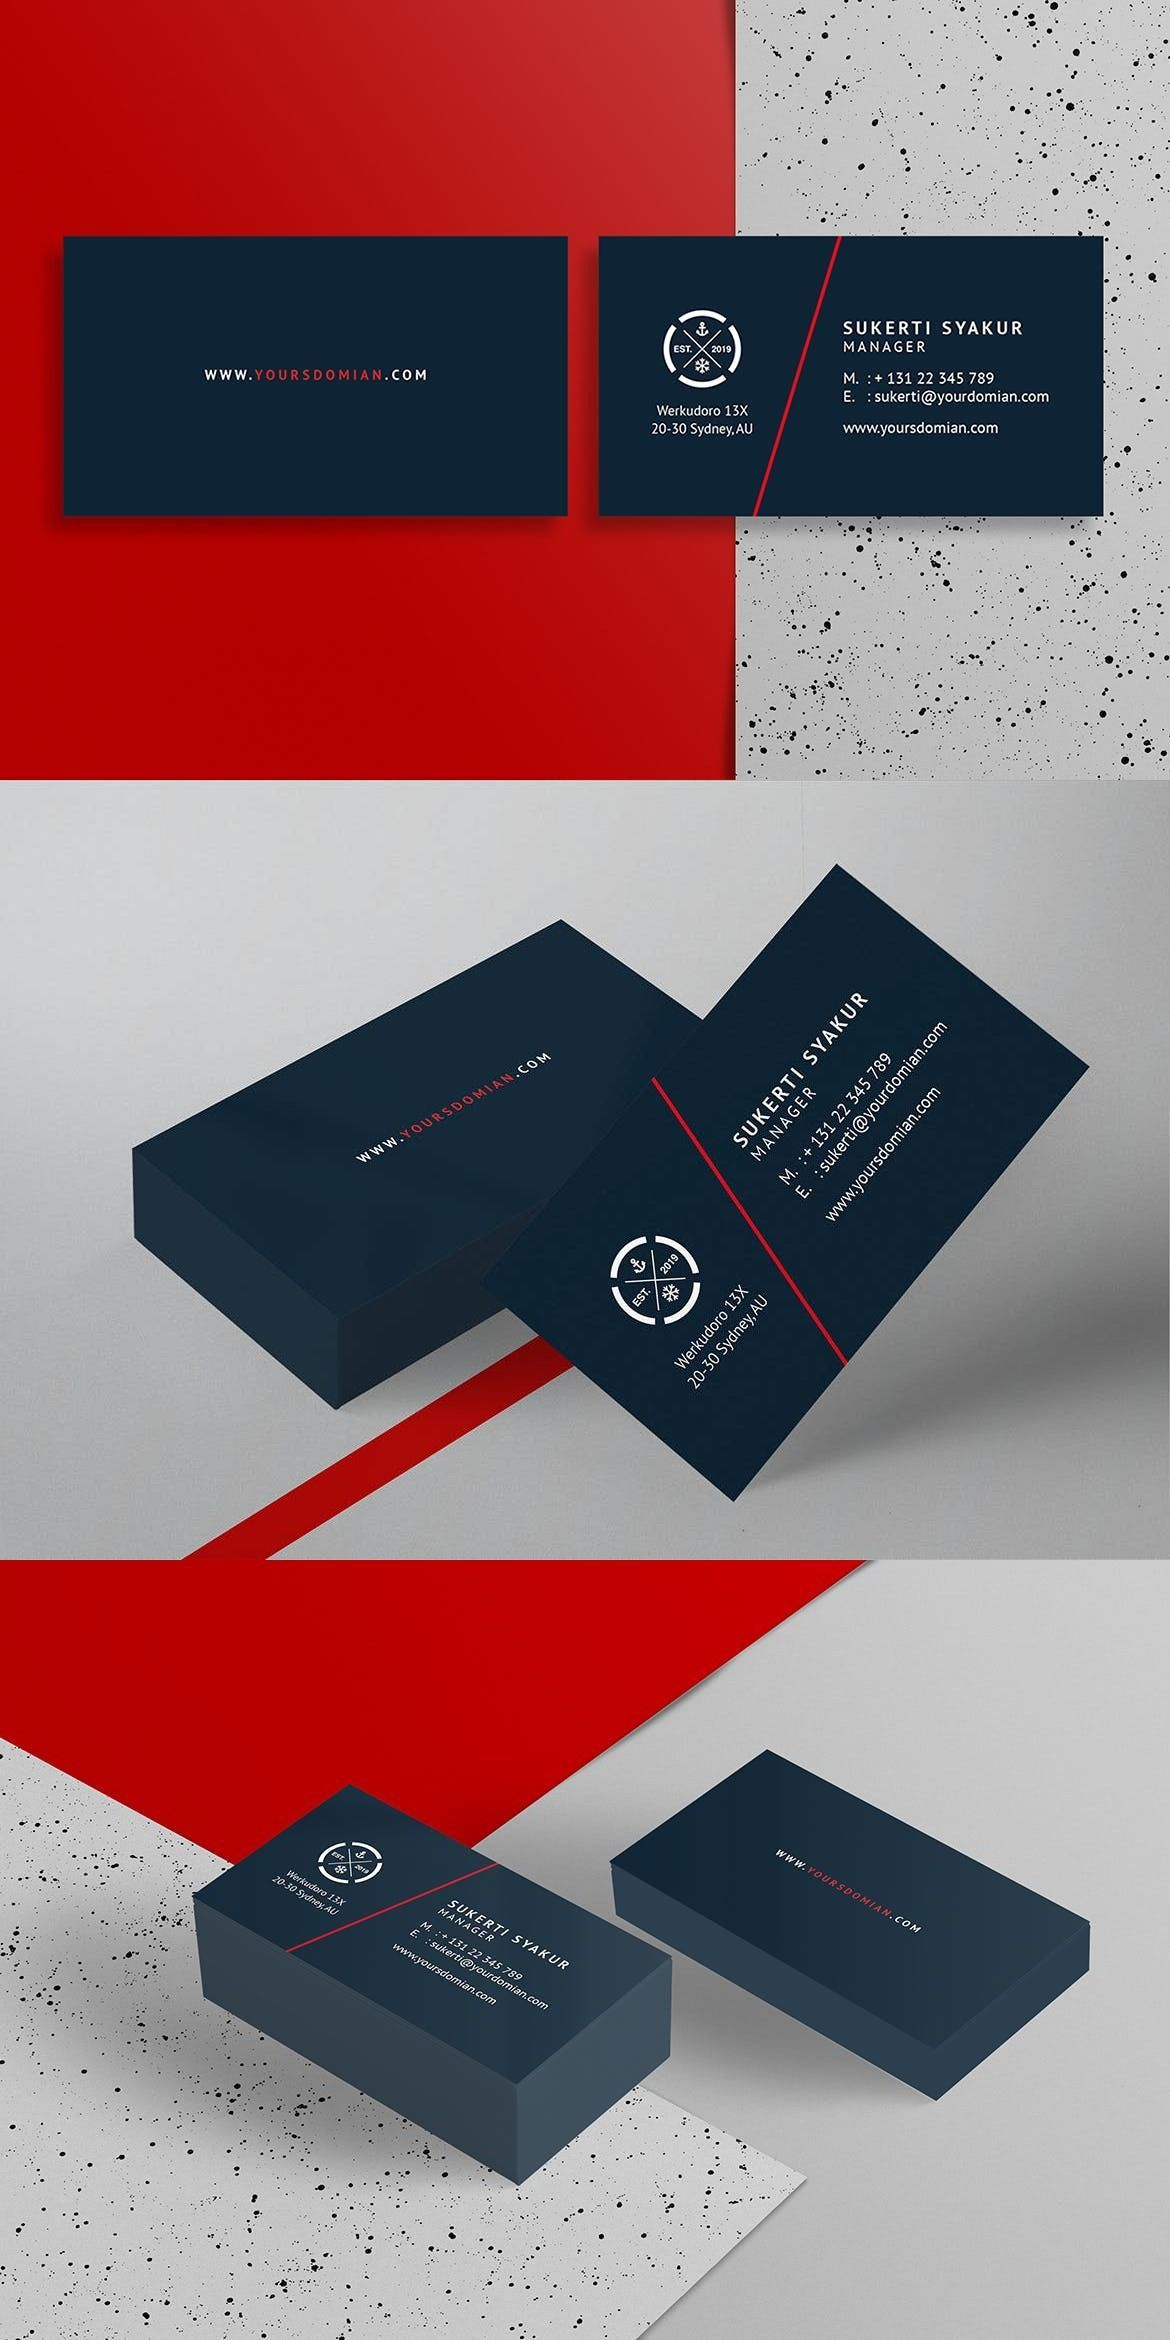 000 Remarkable Busines Card Layout Indesign High Definition  Size Template Free Download Cs6Full